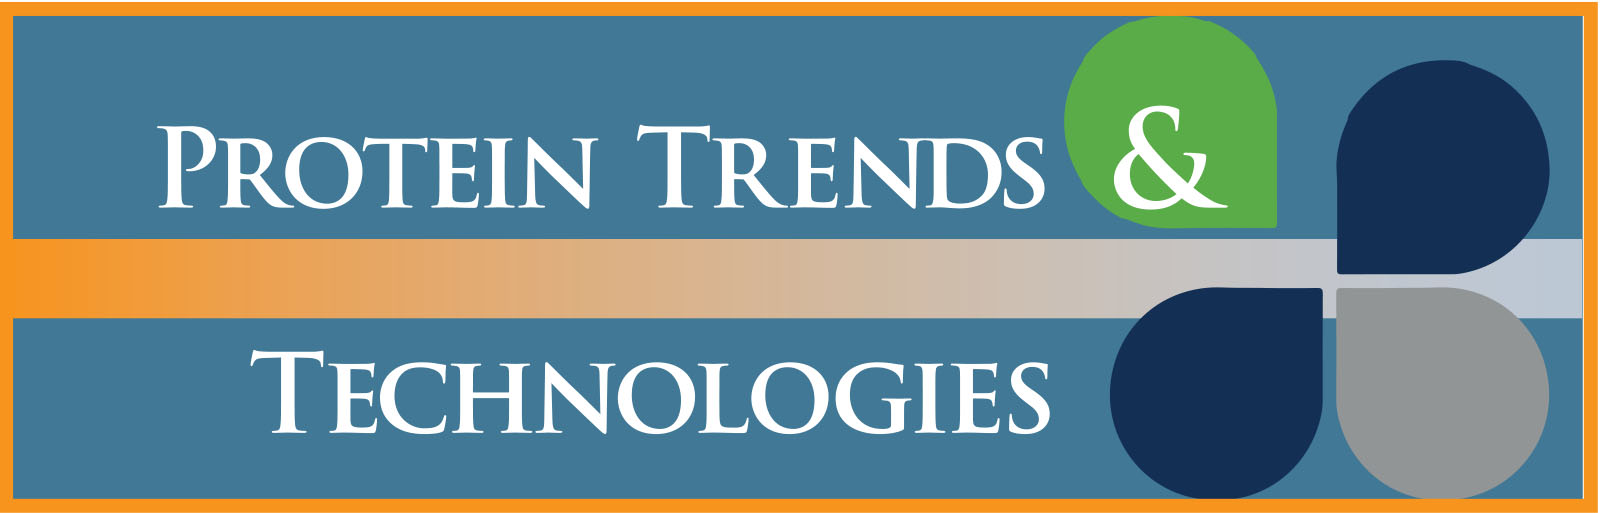 PROTEIN Trends Technologies Logo Generic